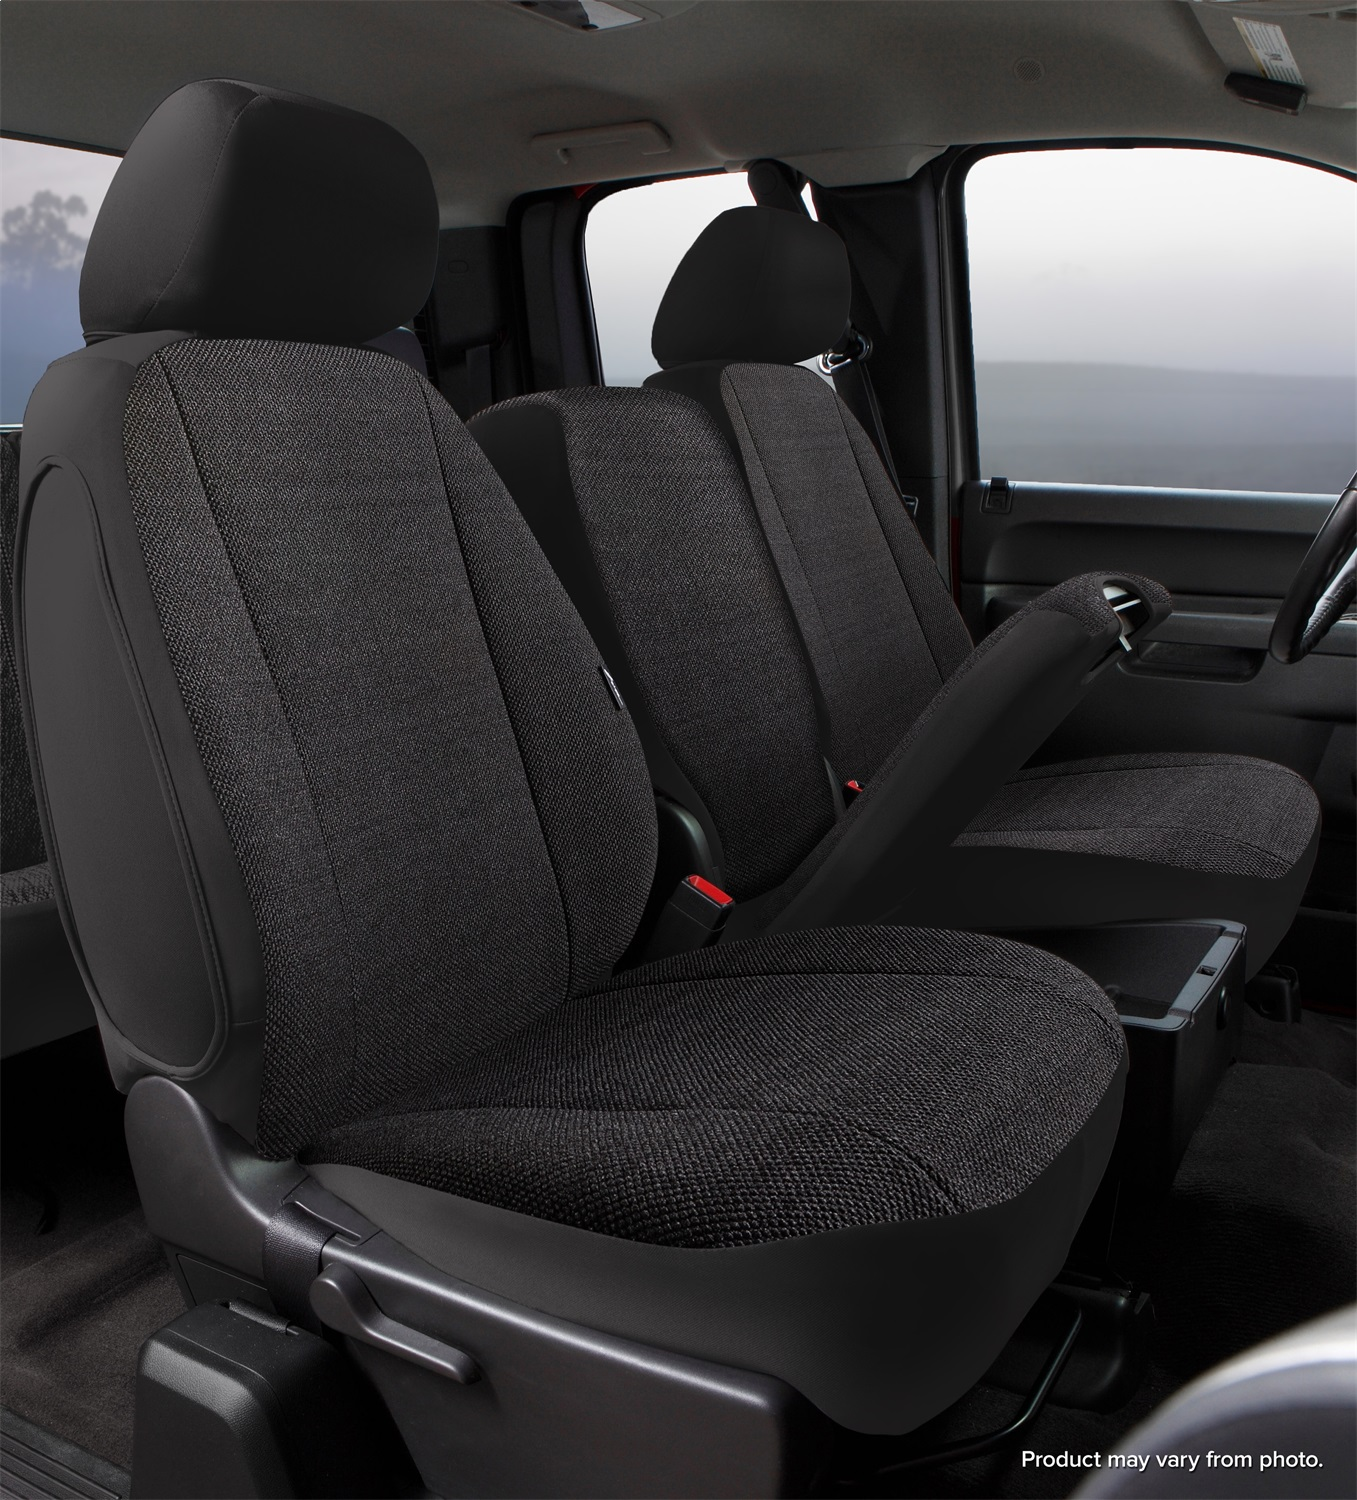 Fia TRS47-30BLACK Wrangler Solid Seat Cover Fits 11-14 F-150 - image 2 of 2